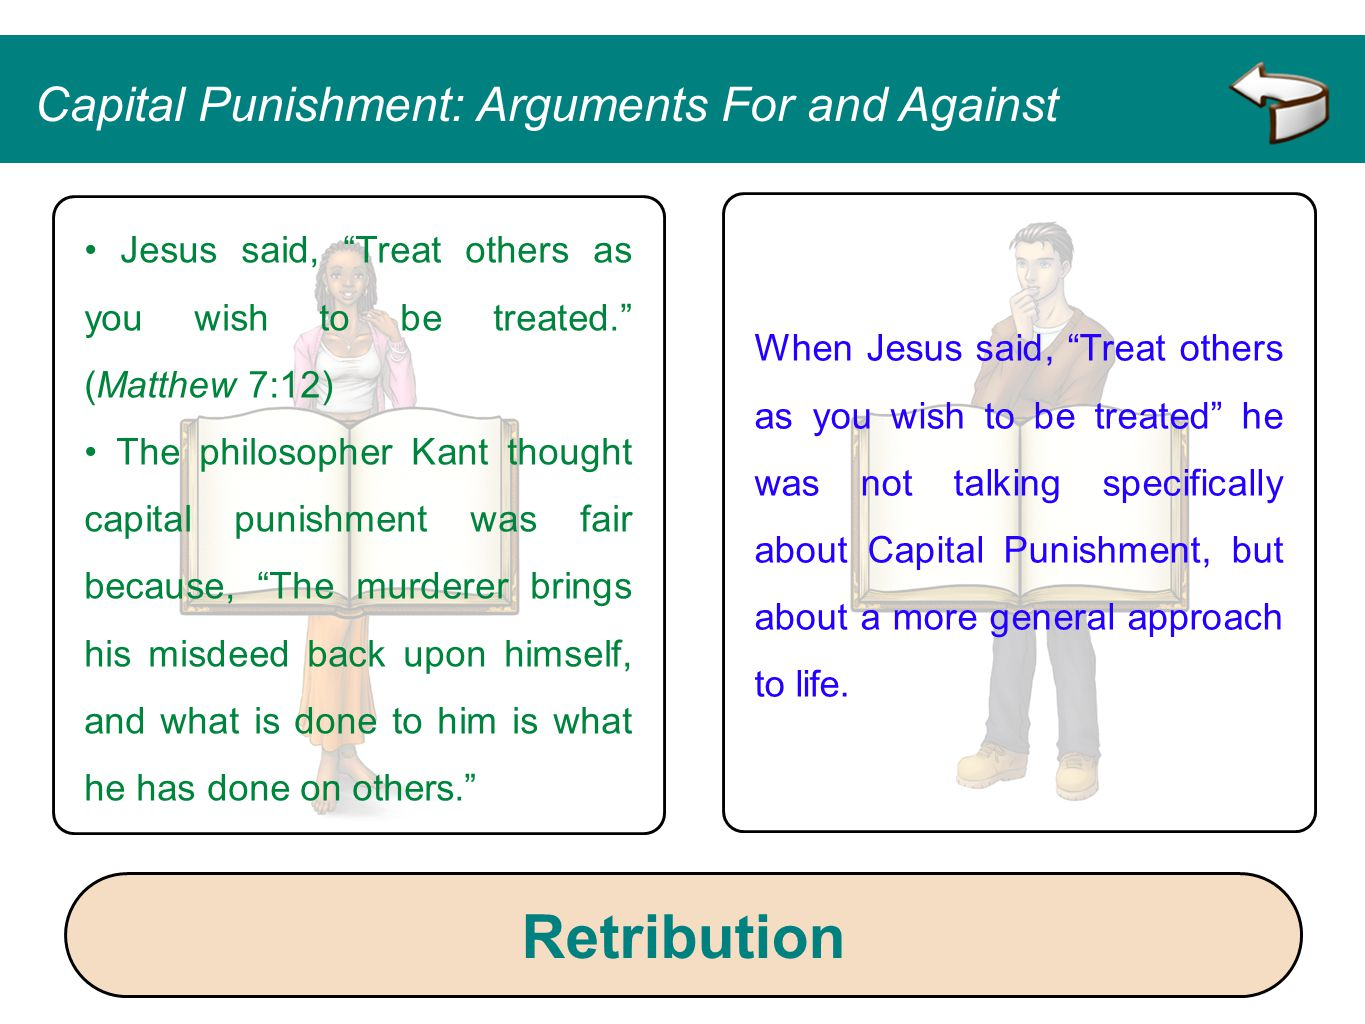 Arguments against capital punishment